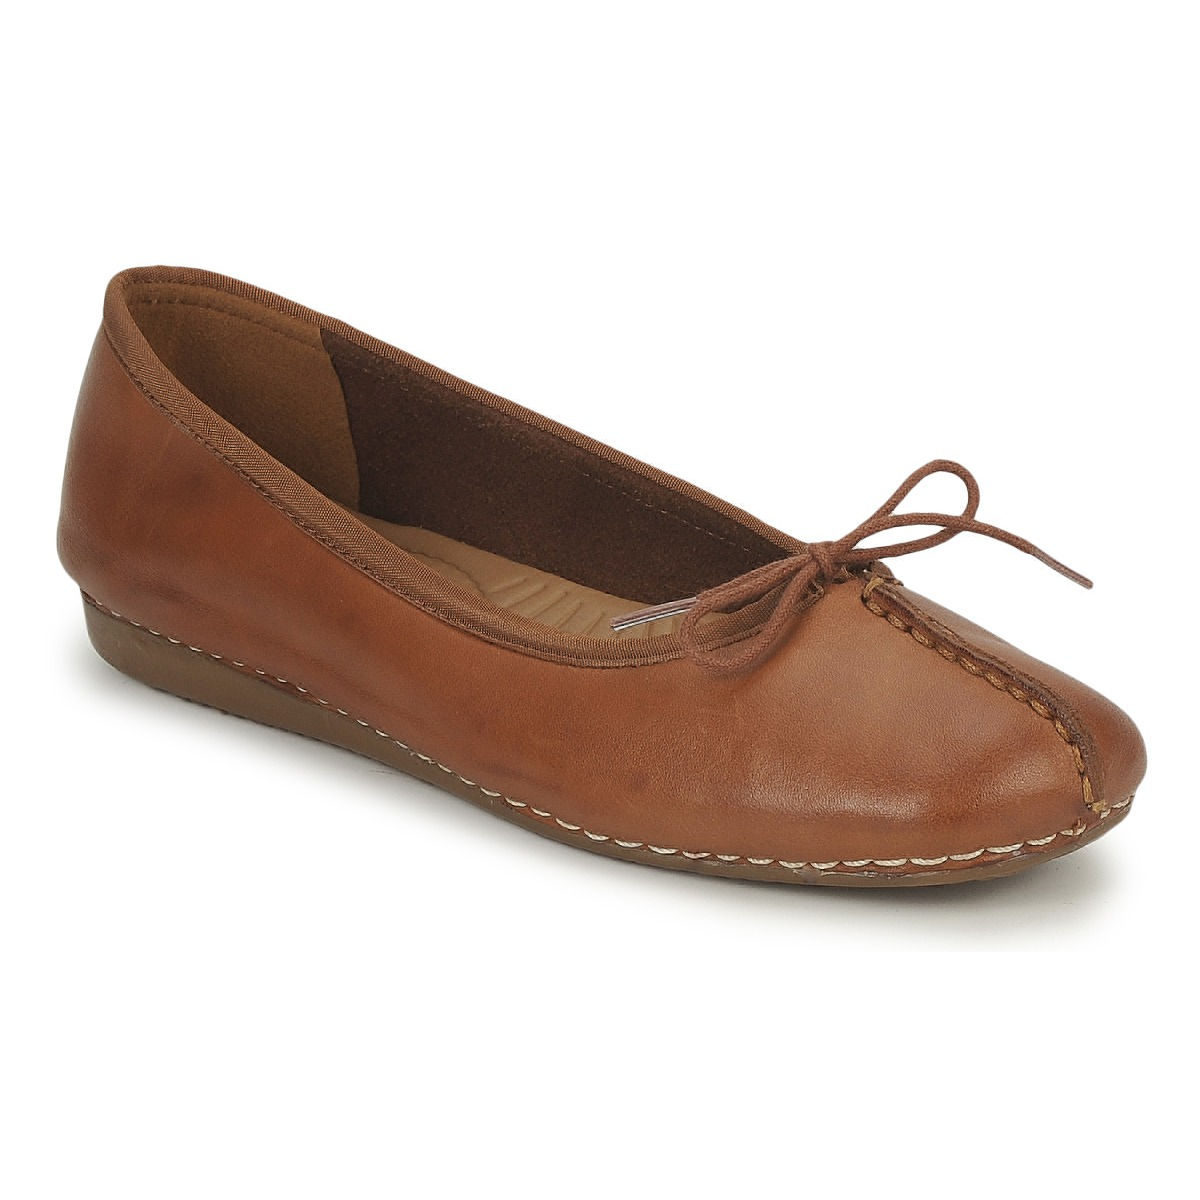 Ballerinas Clarks FRECKLE ICE Brown